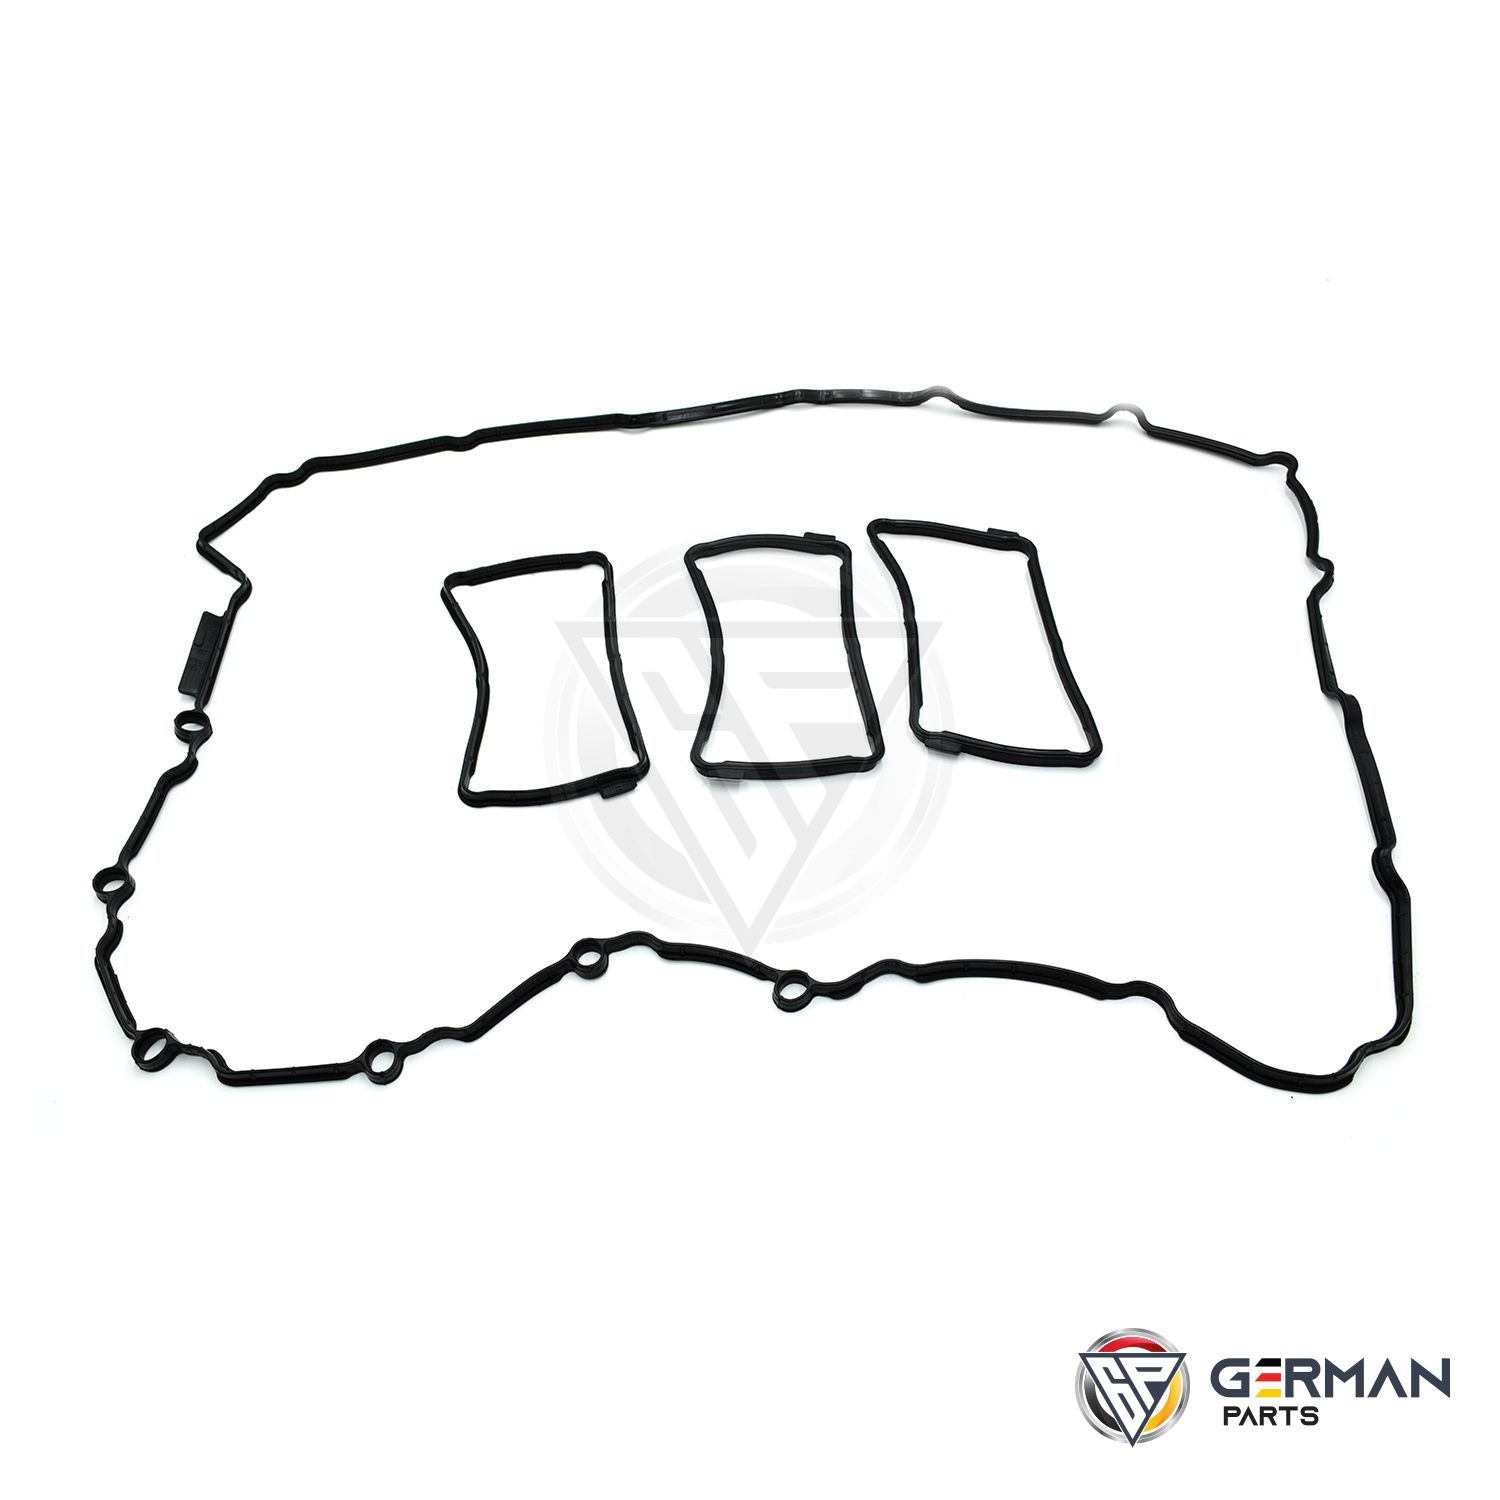 Buy Genuine BMW Valve Cover Gasket 11127587804 - German Parts